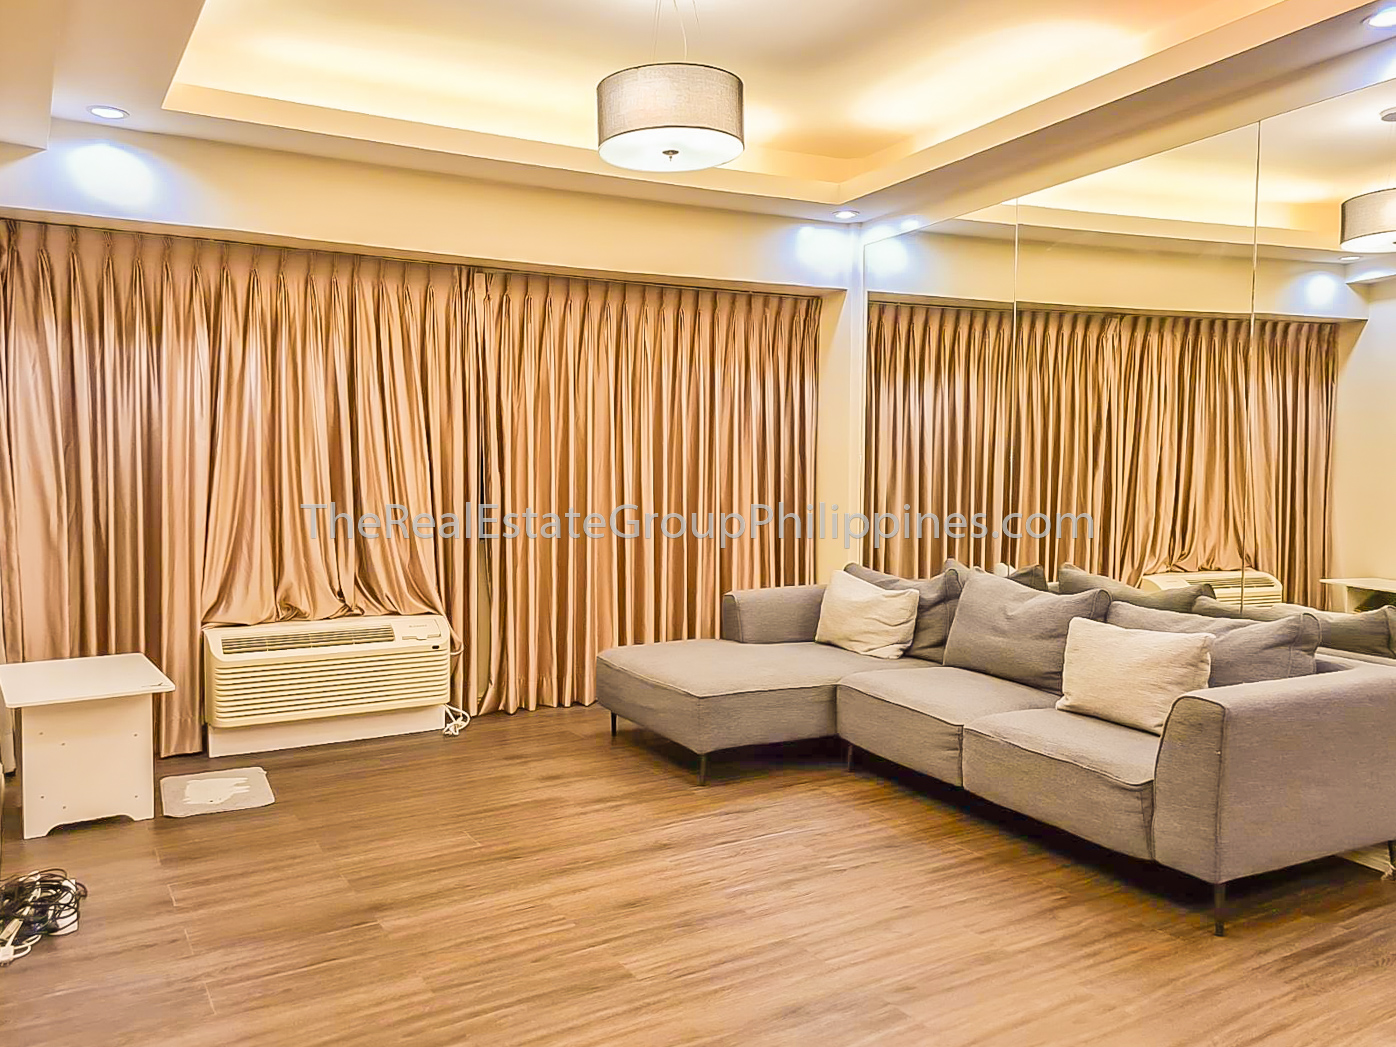 1BR Condo For Rent Lease, Icon Residences, BGC (4 of 7)